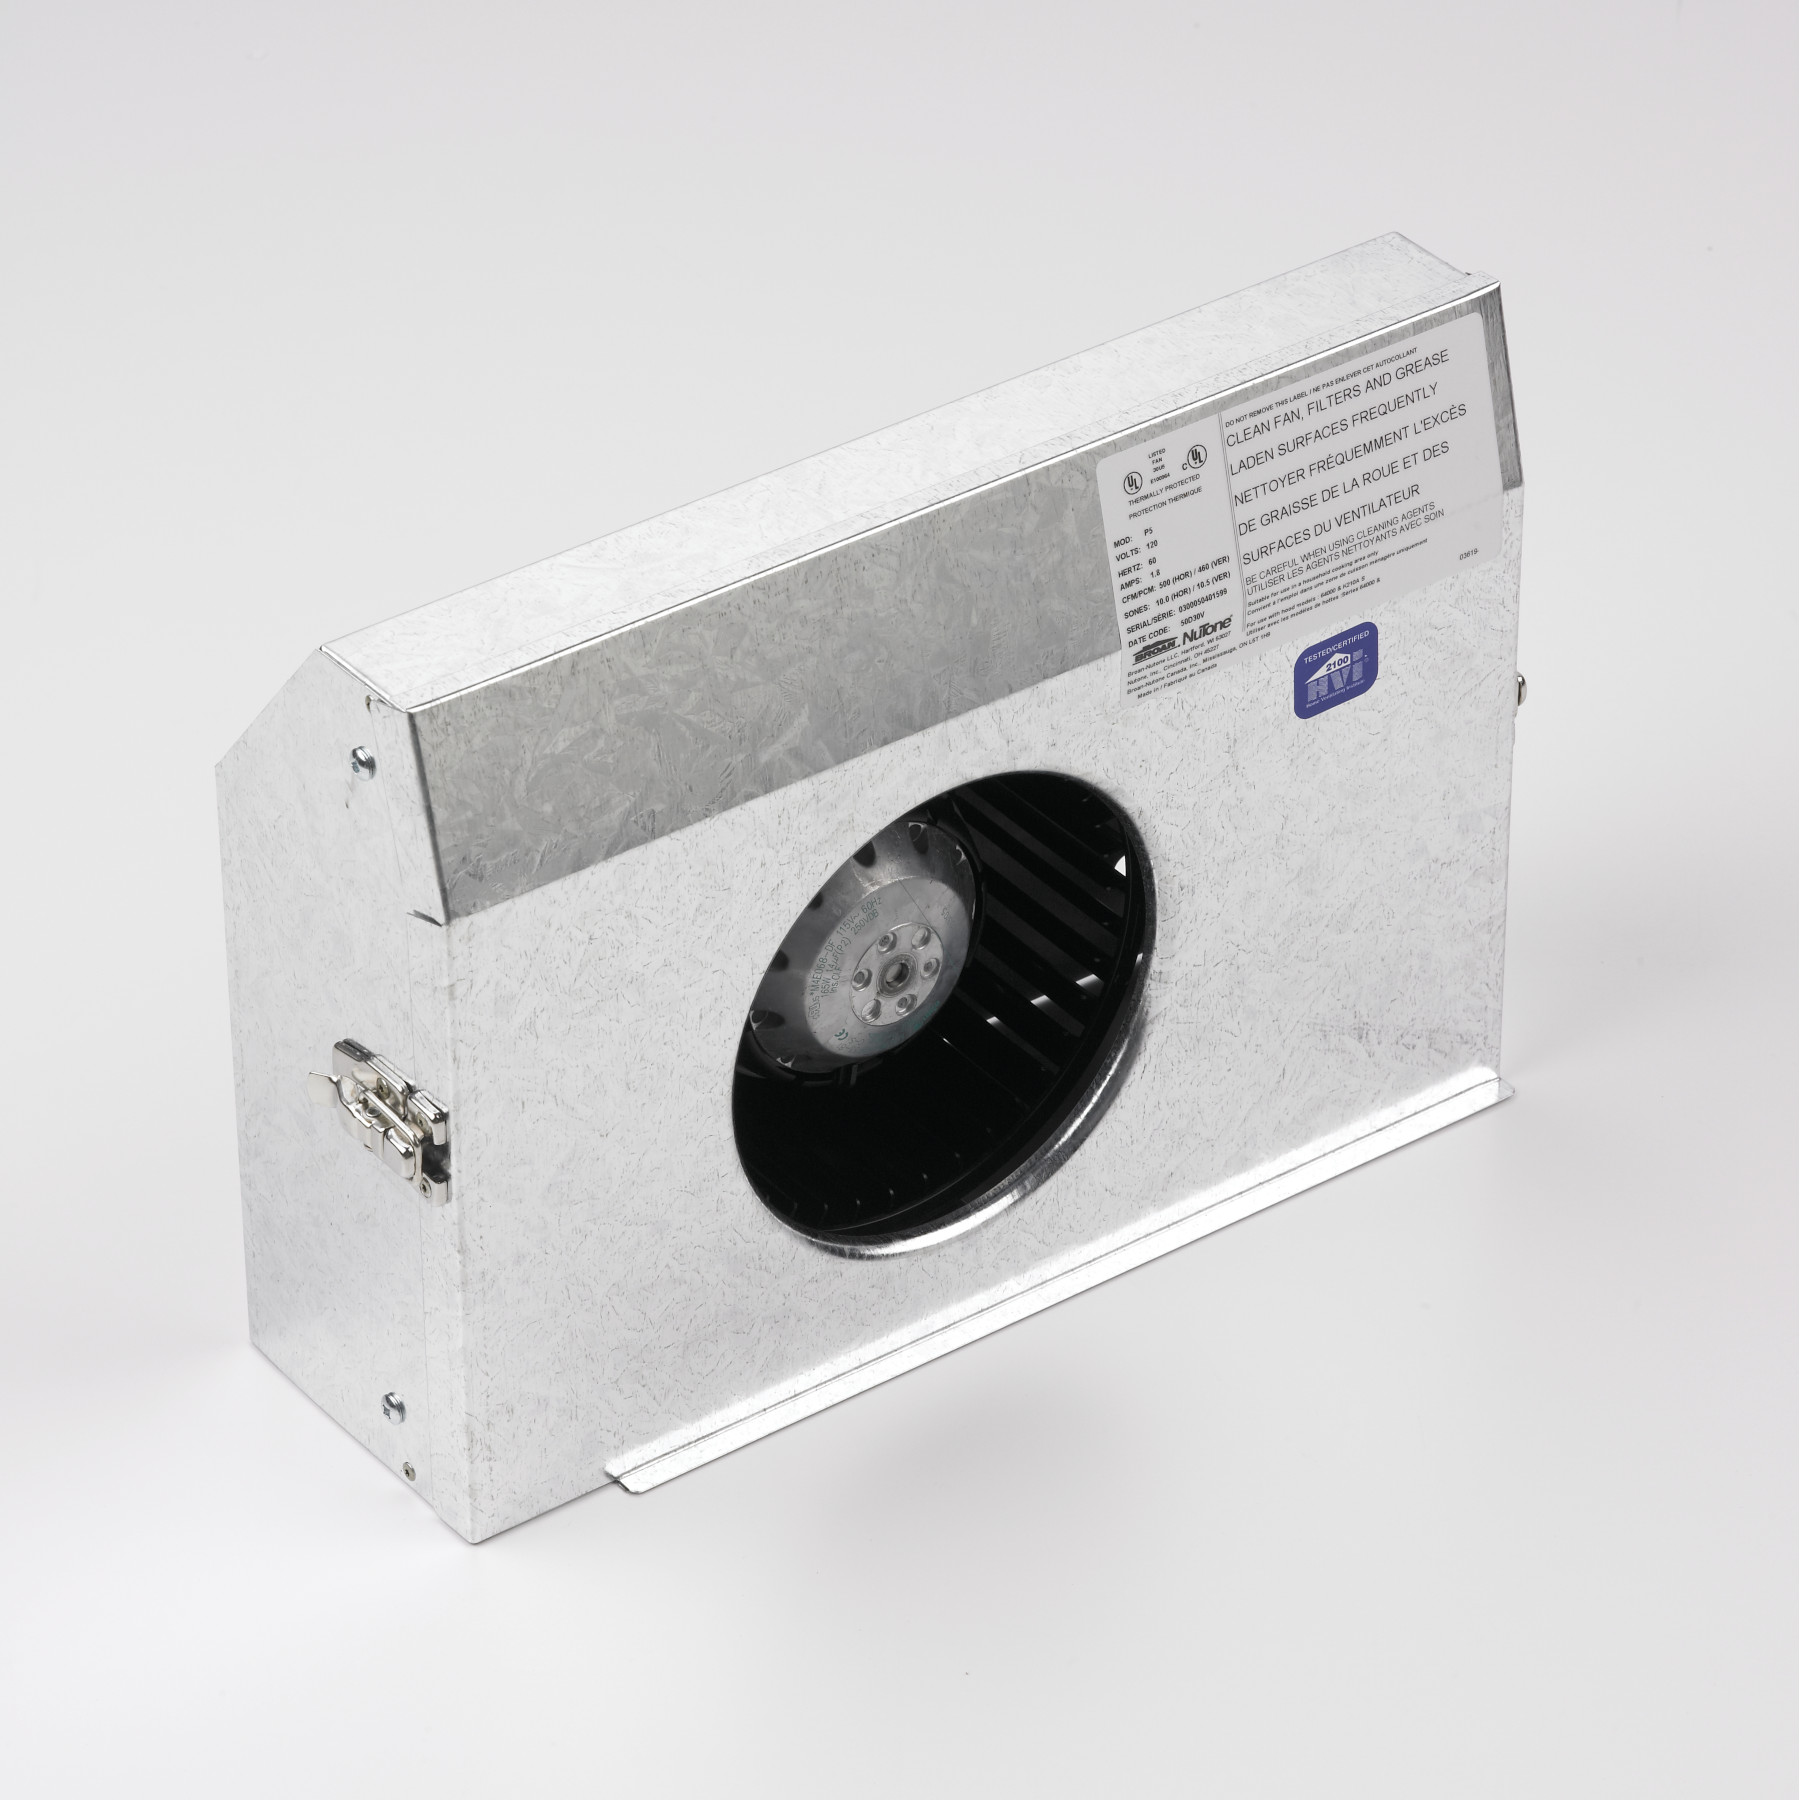 Internal Blower, 460 CFM for use with select Broan® Power Packs and Inserts